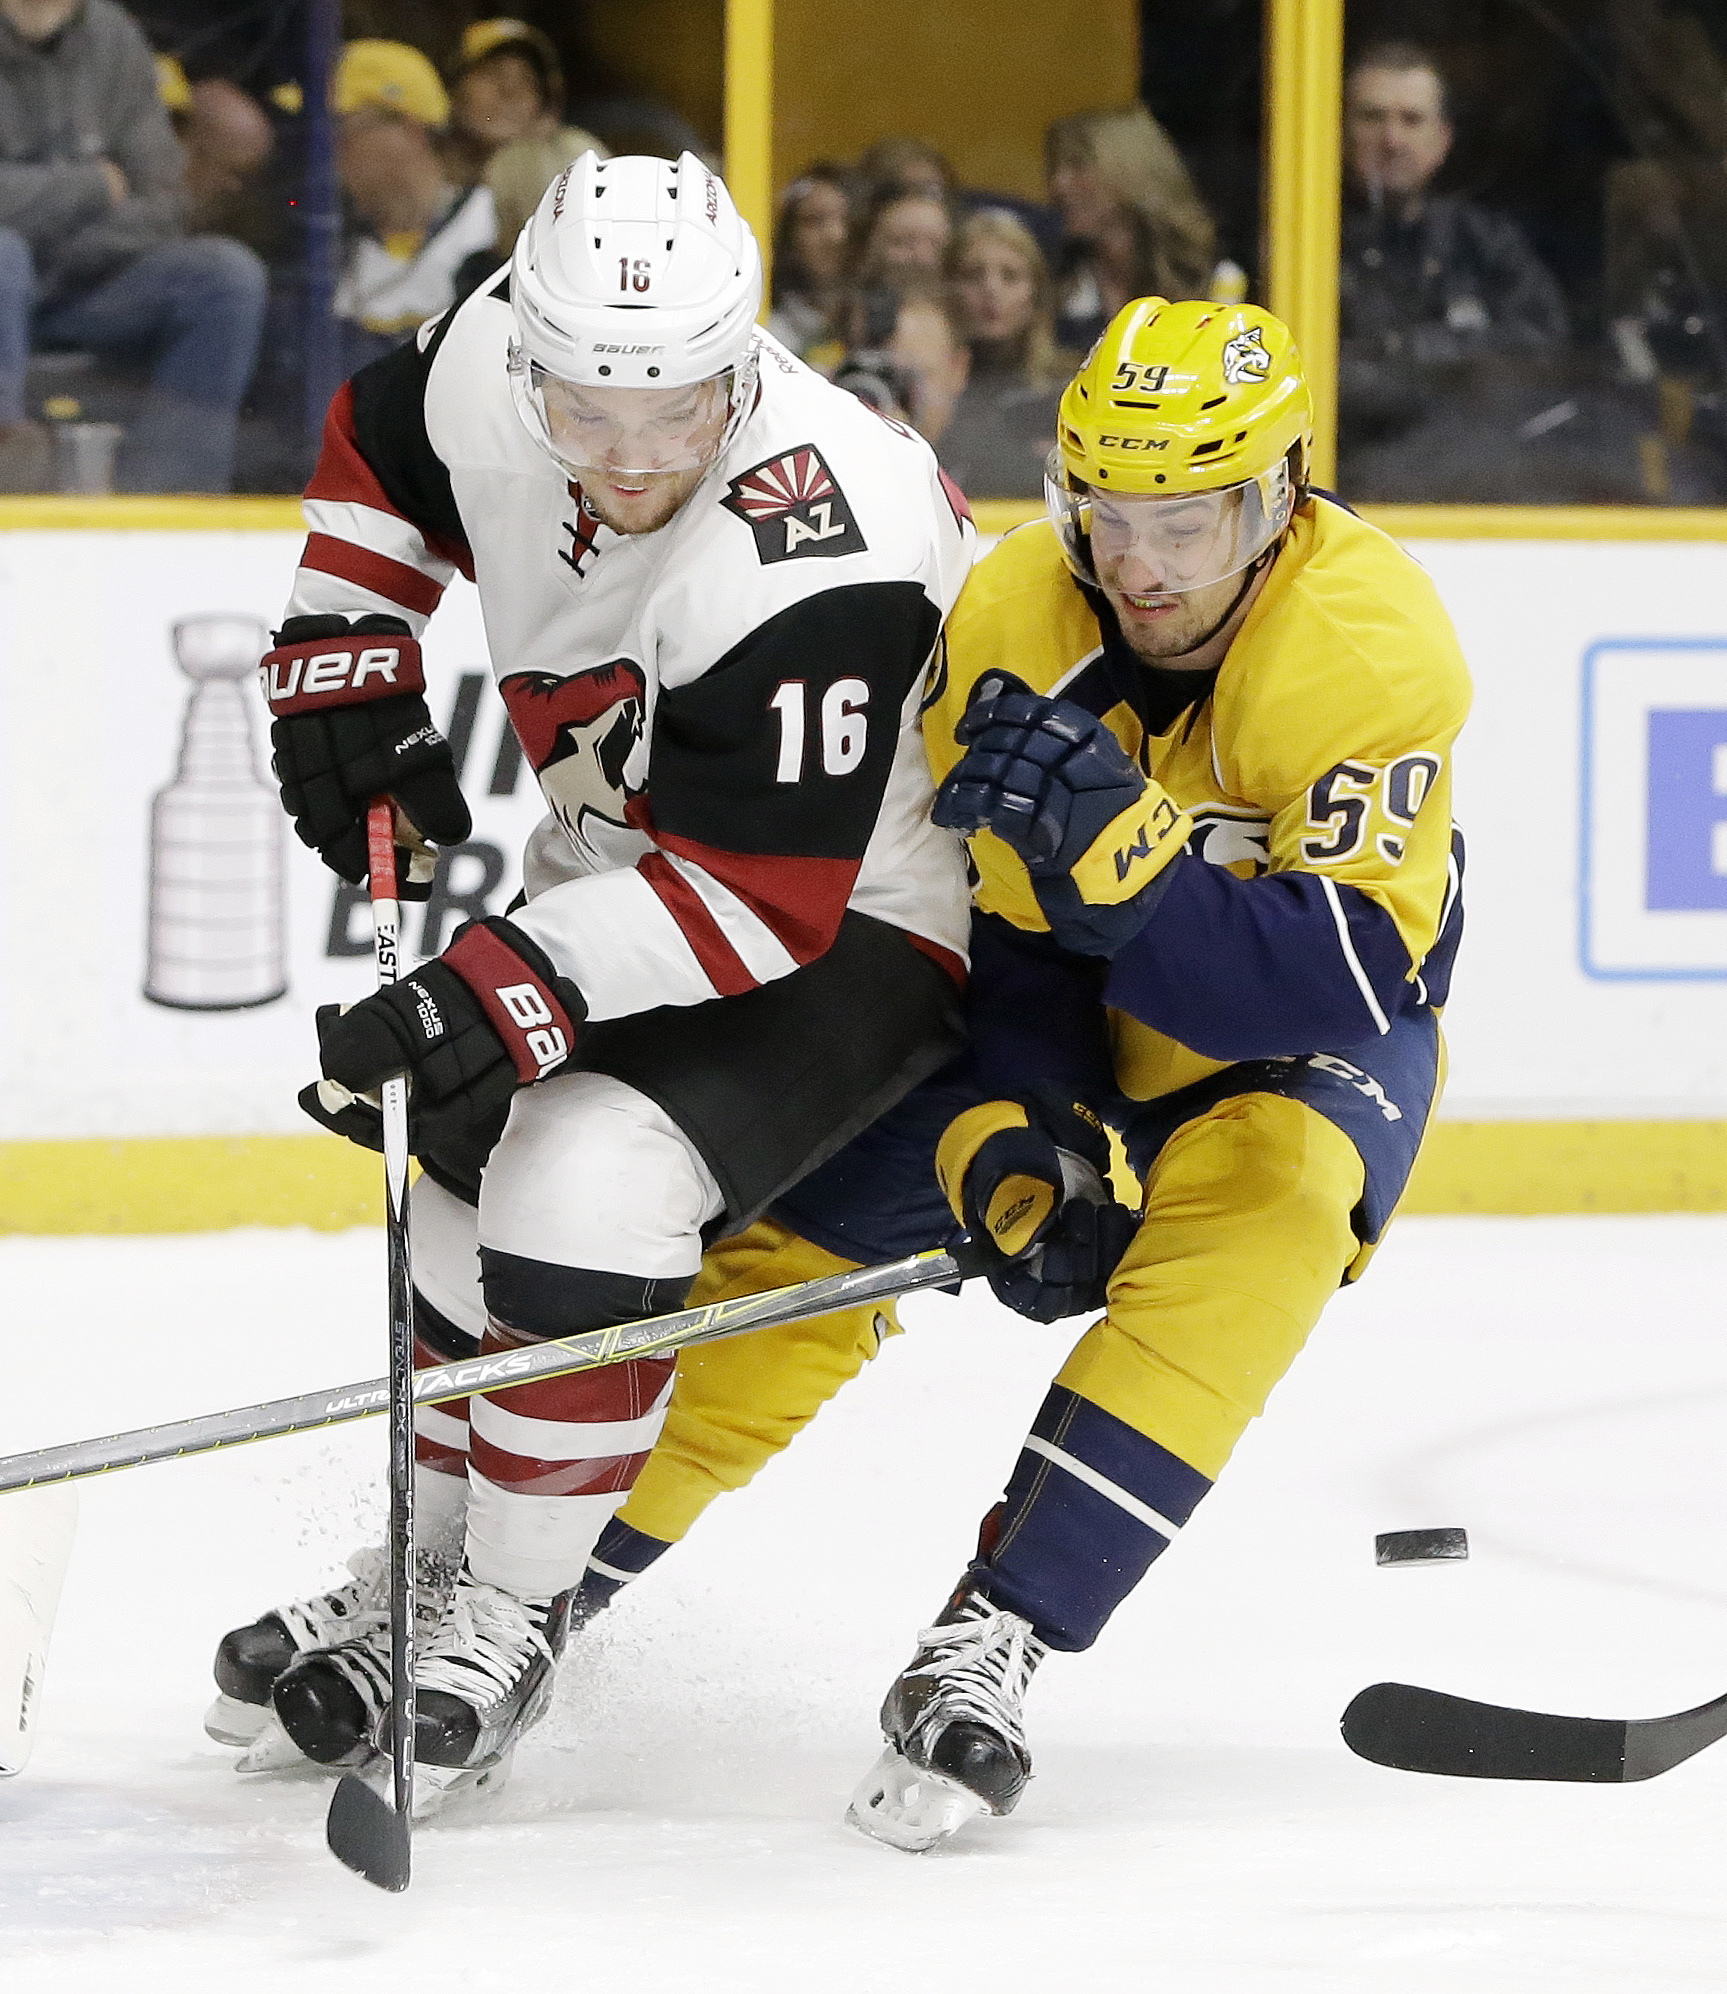 Arizona Coyotes center Max Domi (16) loses the puck as he is defended by Nashville Predators' Roman Josi (59), of Switzerland, in the first period of an NHL hockey game Thursday, April 7, 2016, in Nashville, Tenn. (AP Photo/Mark Humphrey)